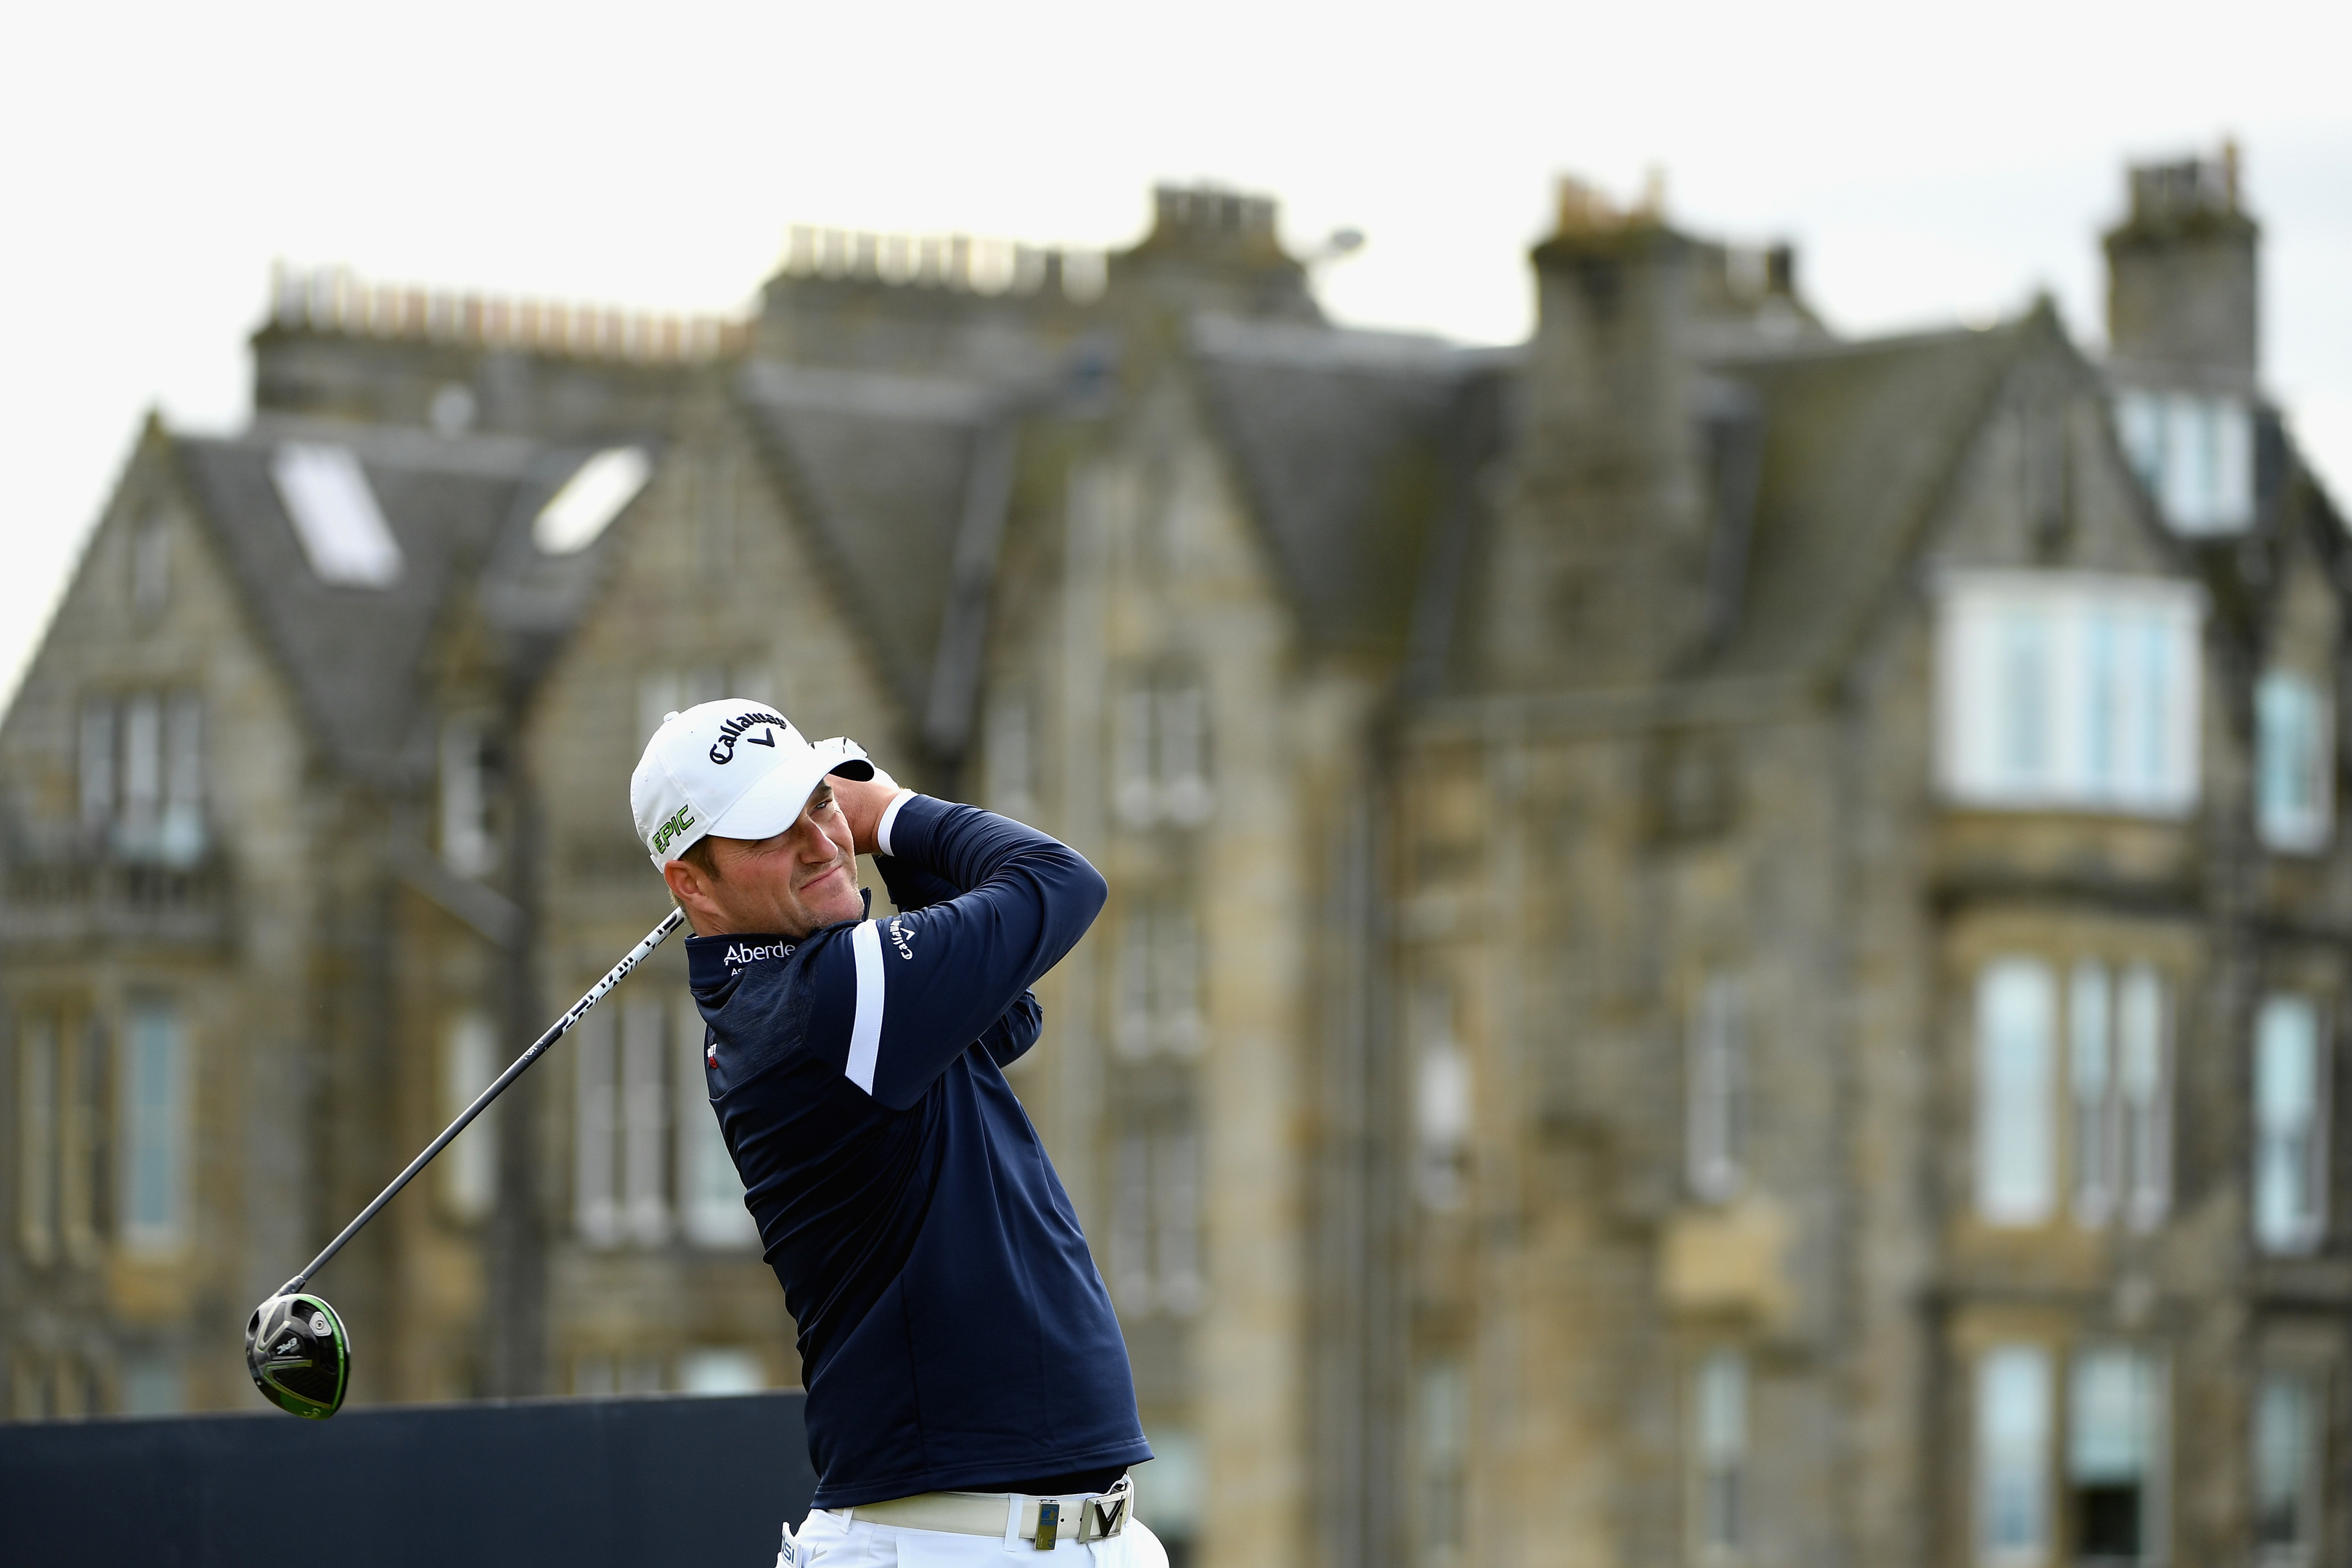 Marc Warren of England tees off on the 2nd during his final round 66 at the Dunhill Links Championship.